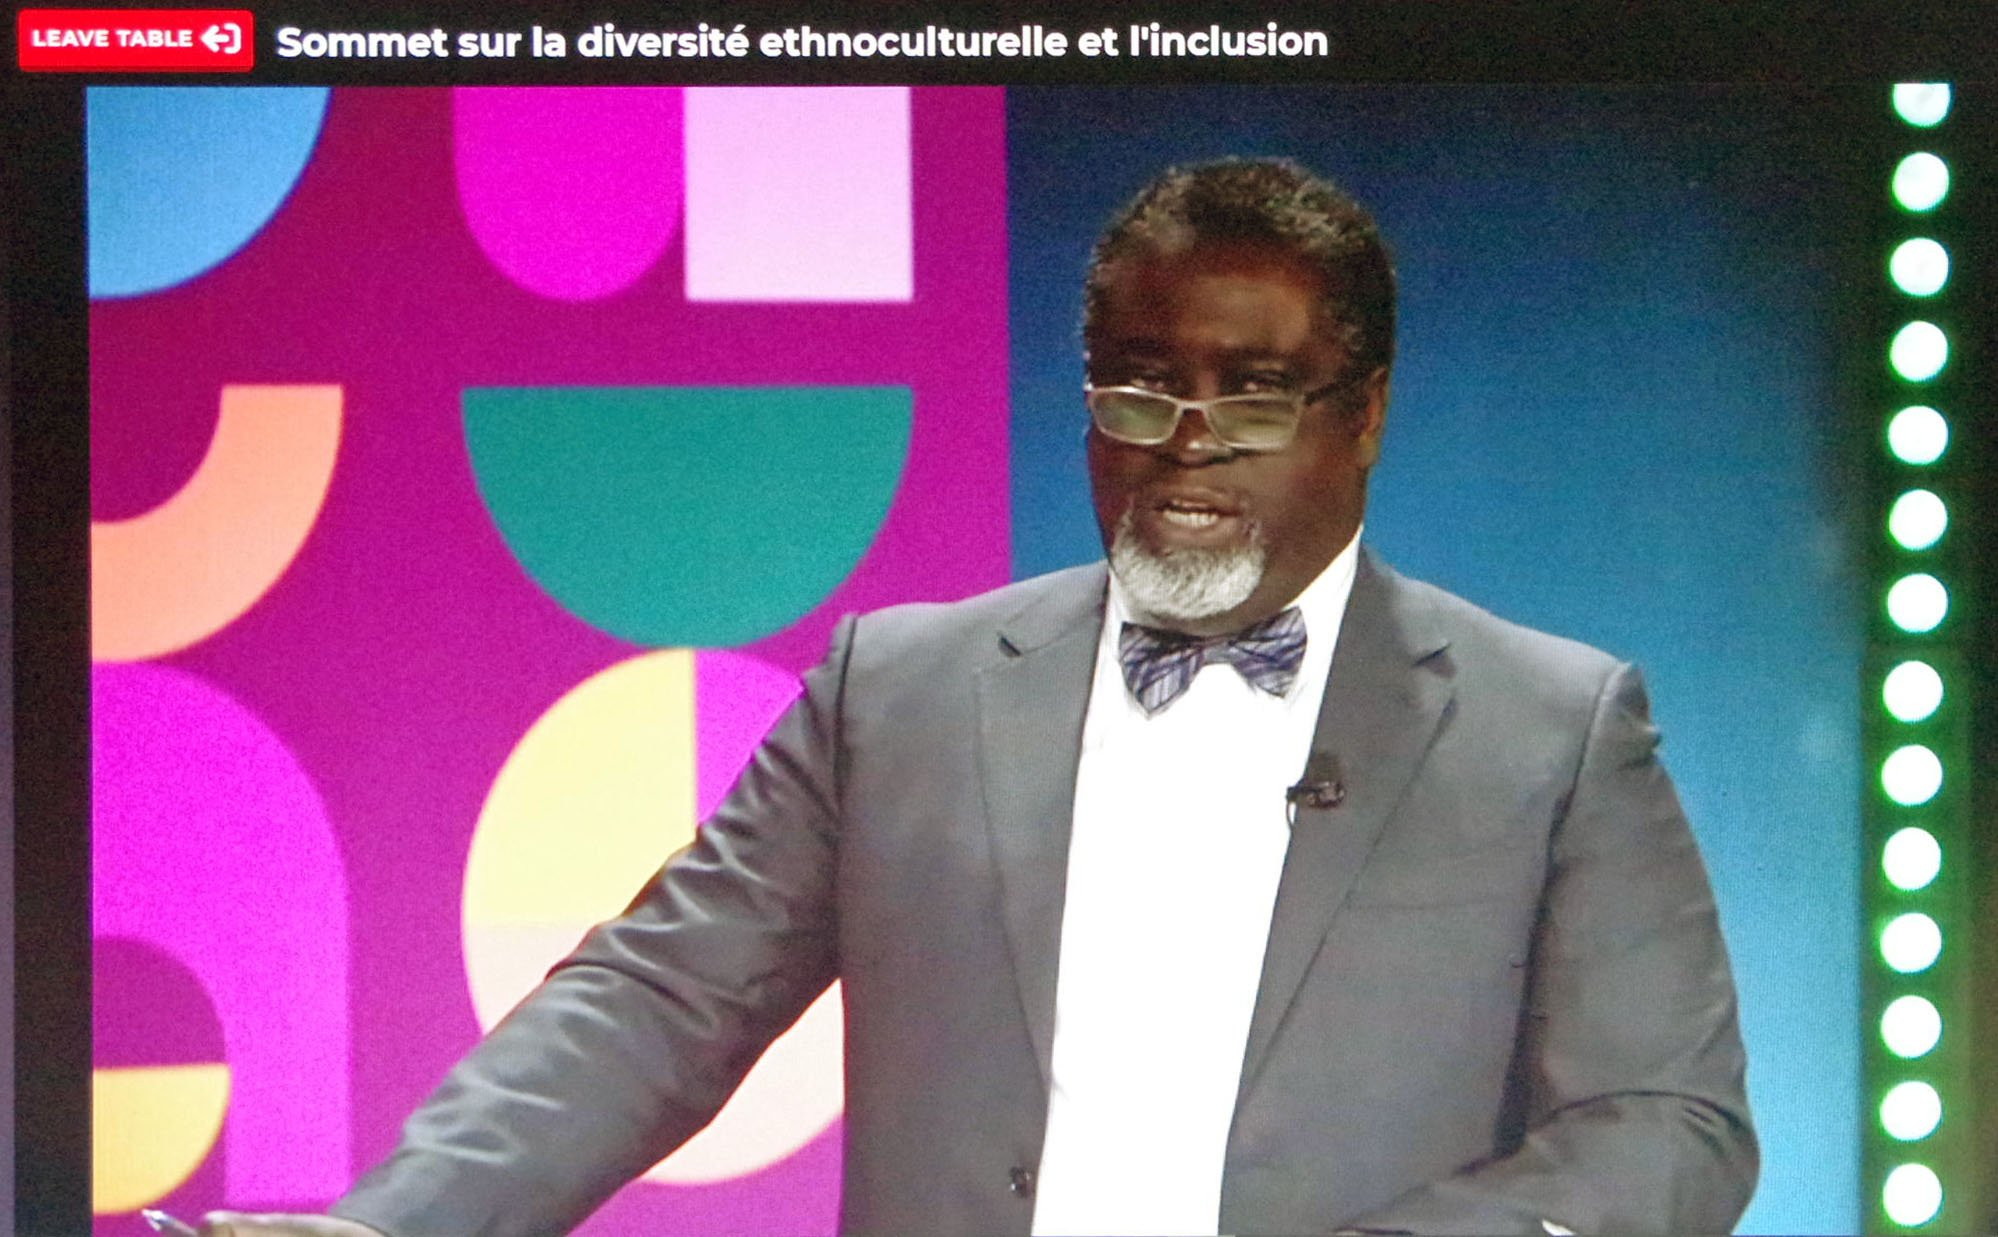 Laval holds its first-ever summit on diversity and ethnocultural inclusion